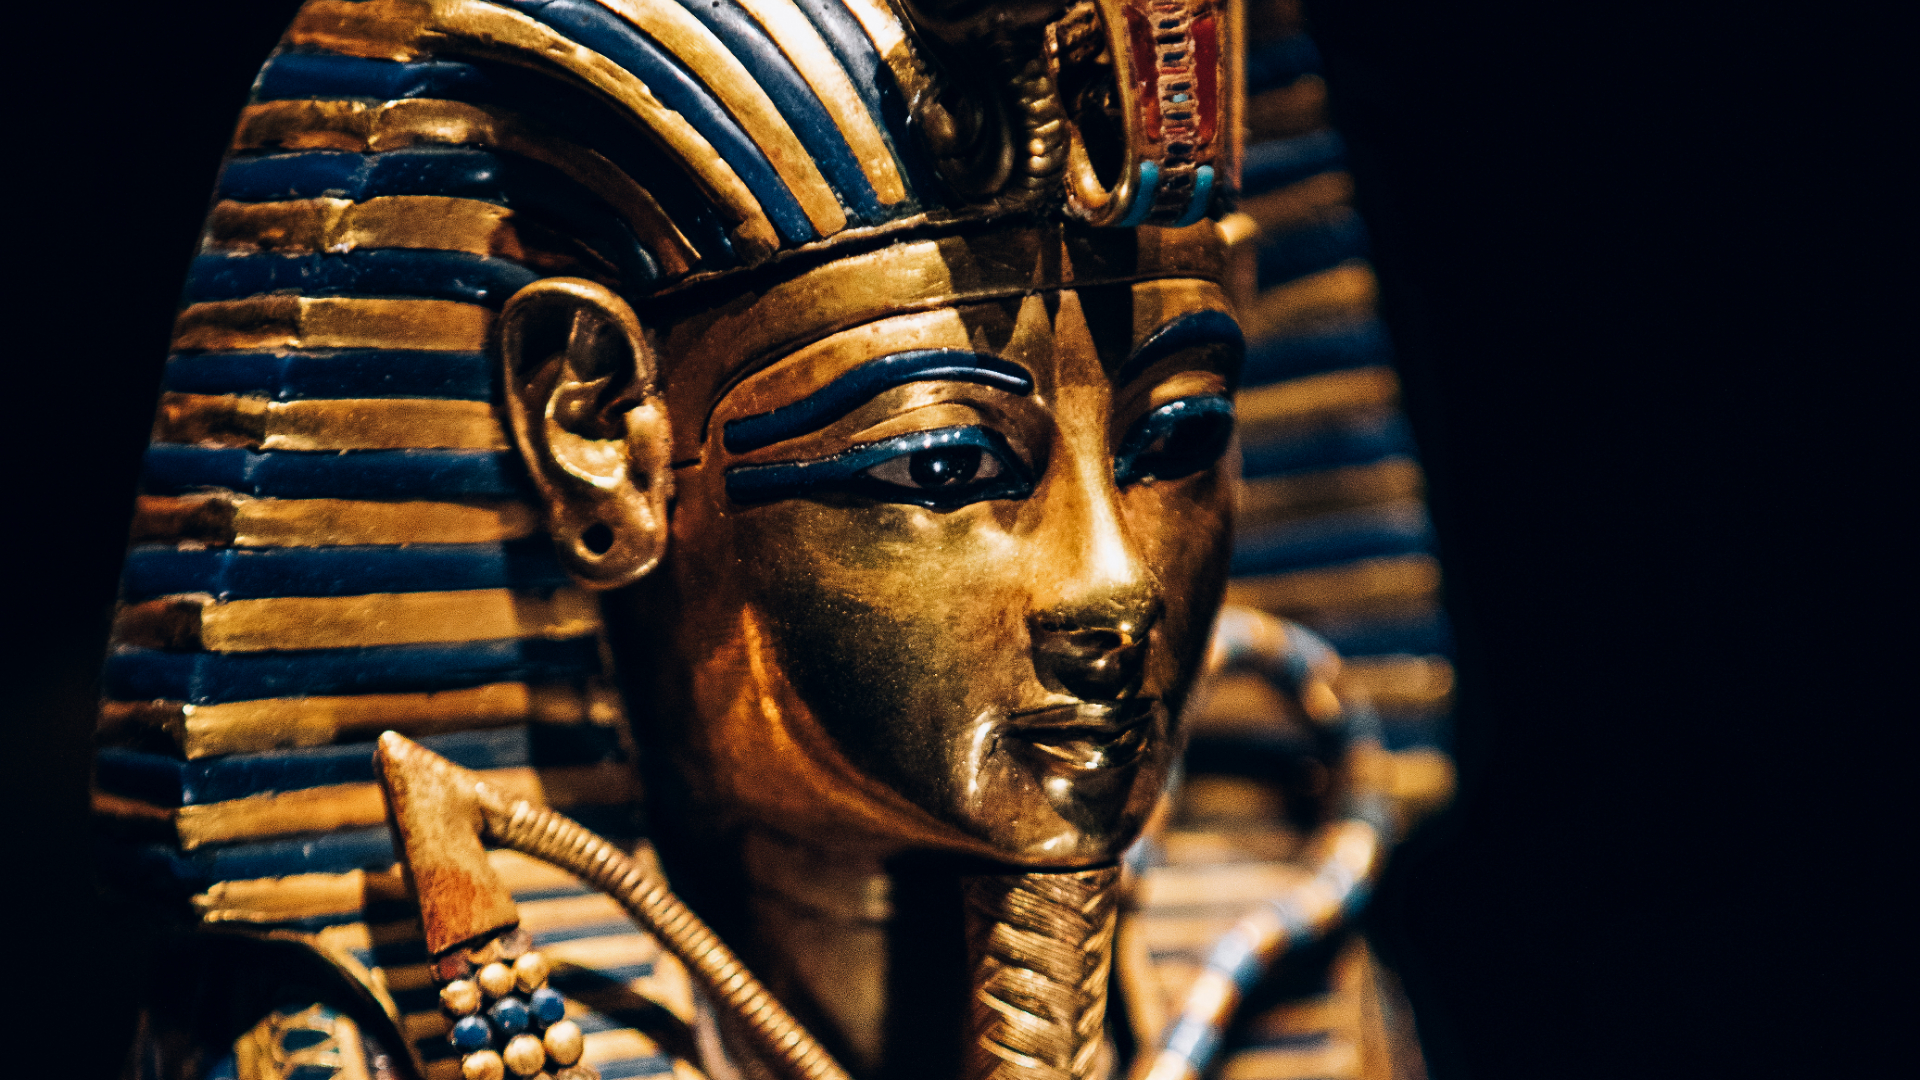 Close up of King Tutankhamun's canopic coffinette.